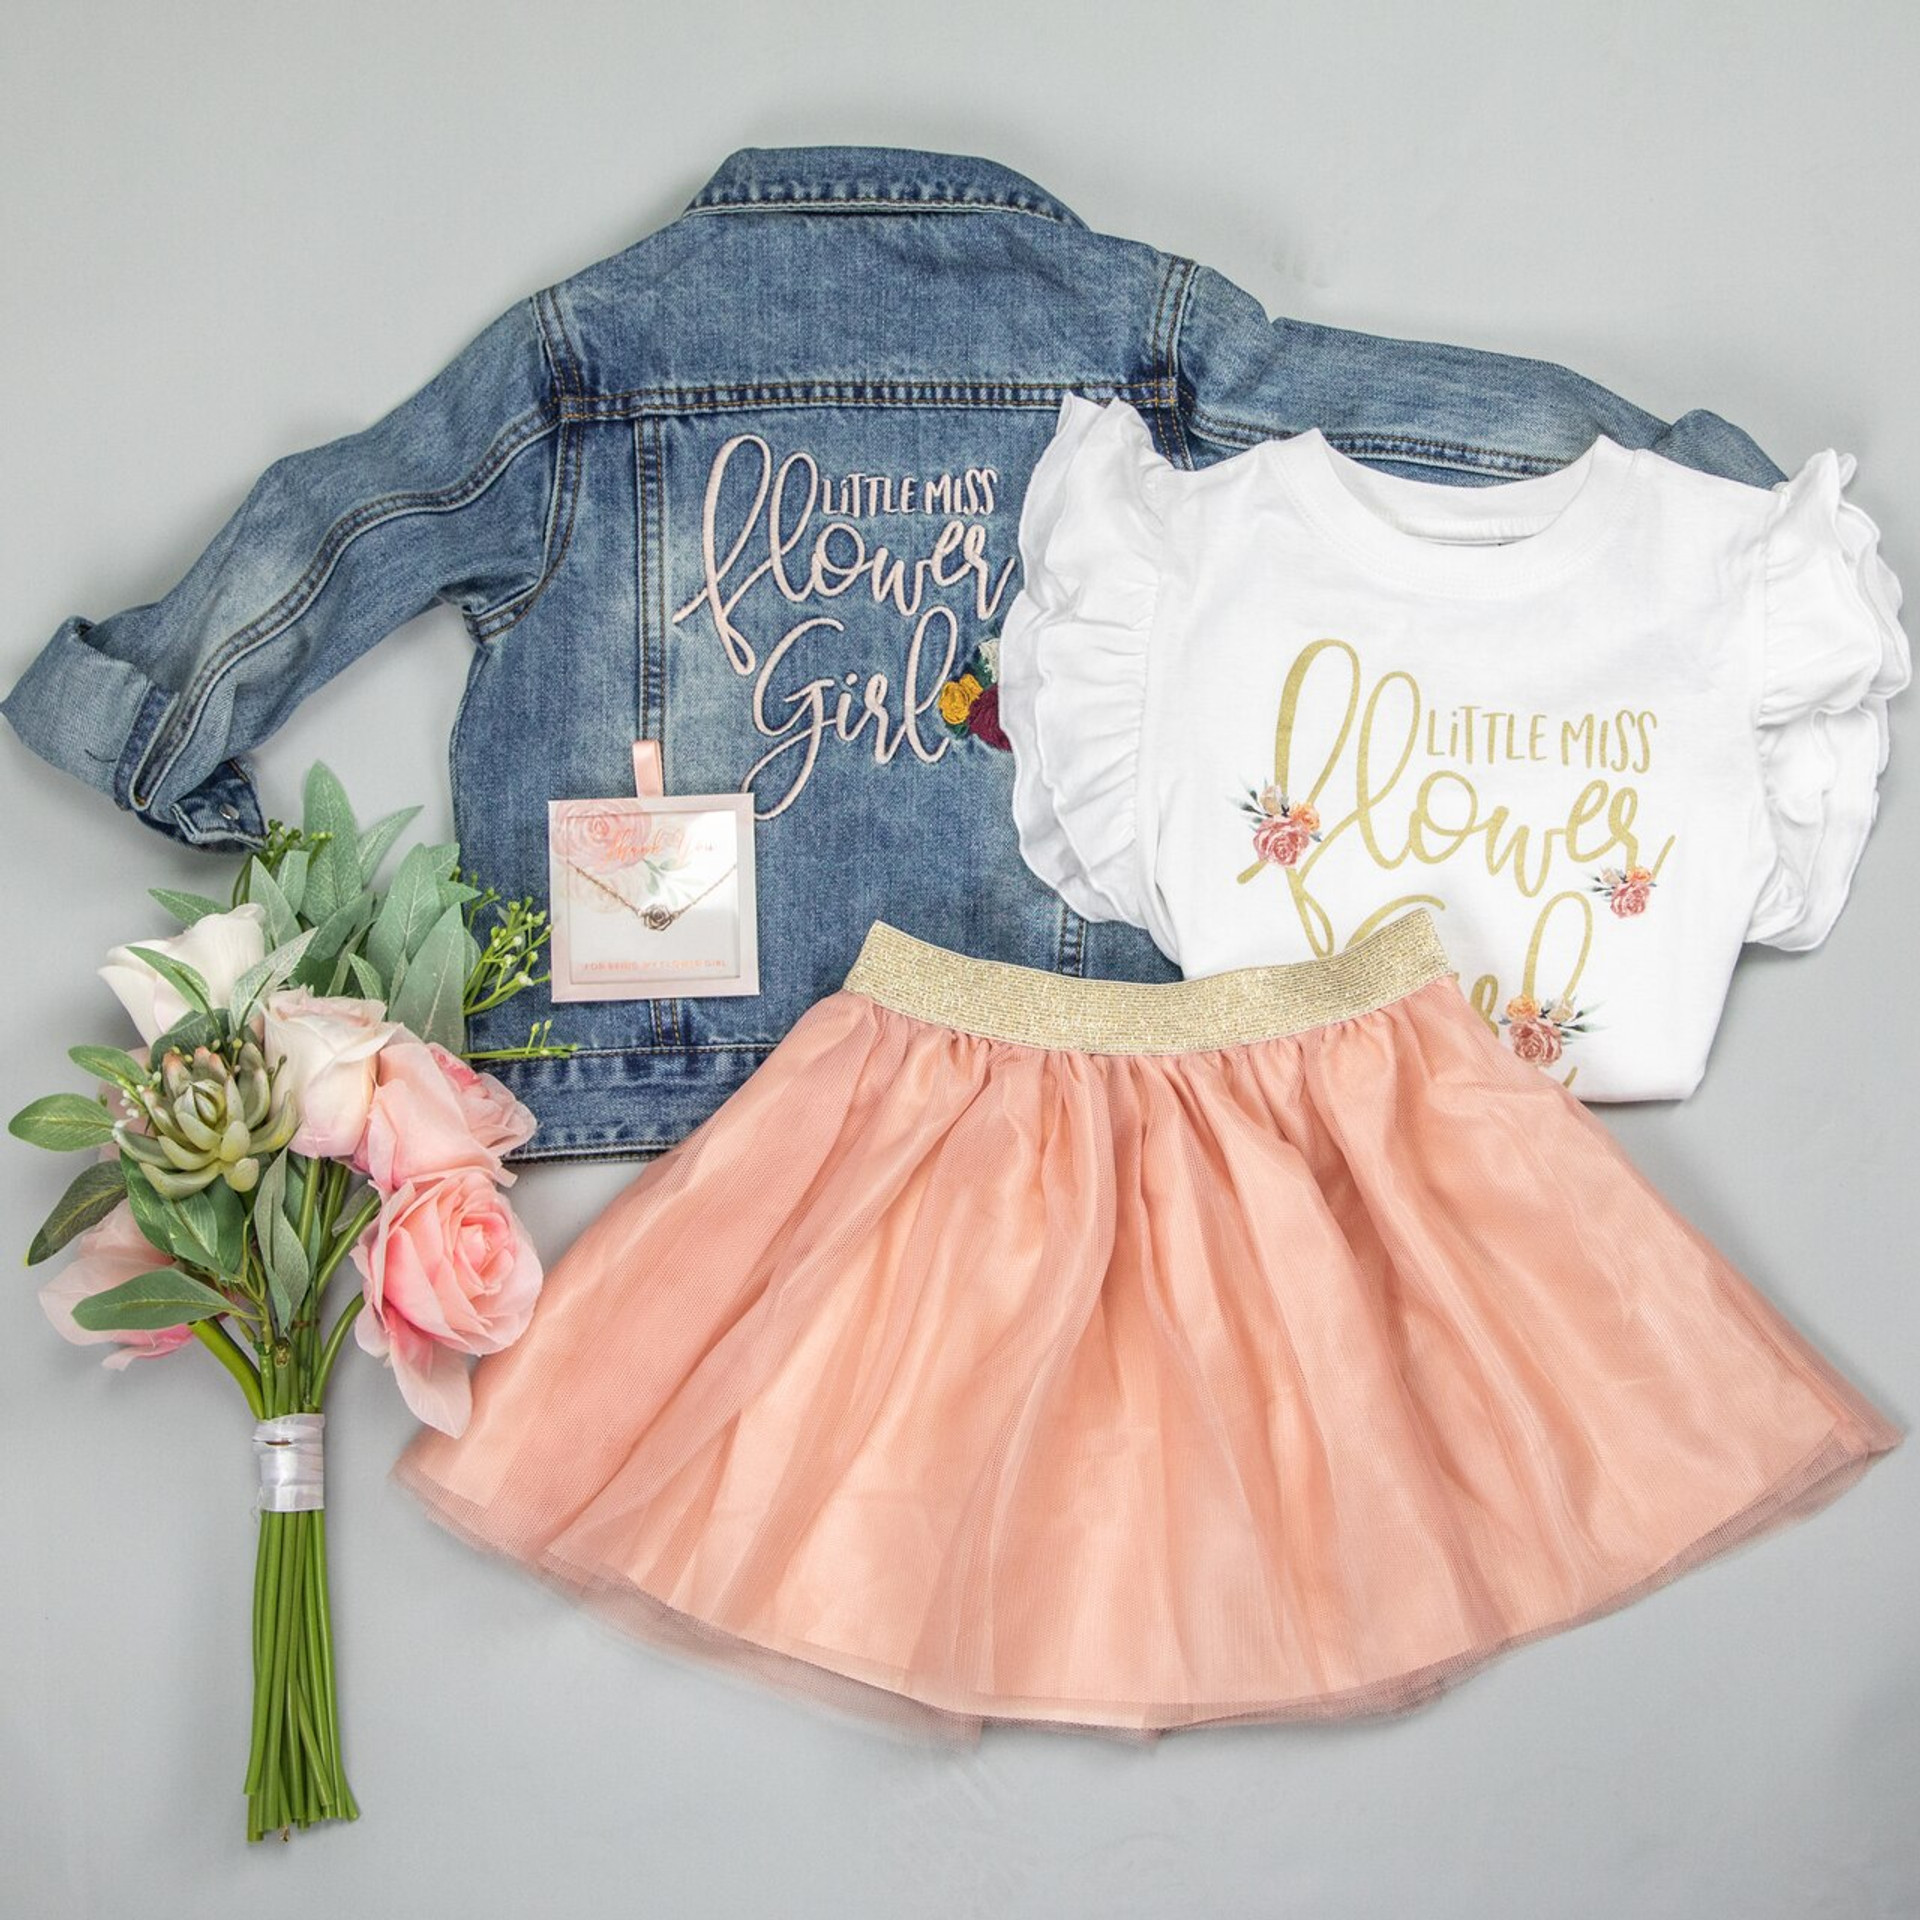 Little Miss Flower Girl Ruffle Tee + Tulle Skirt set